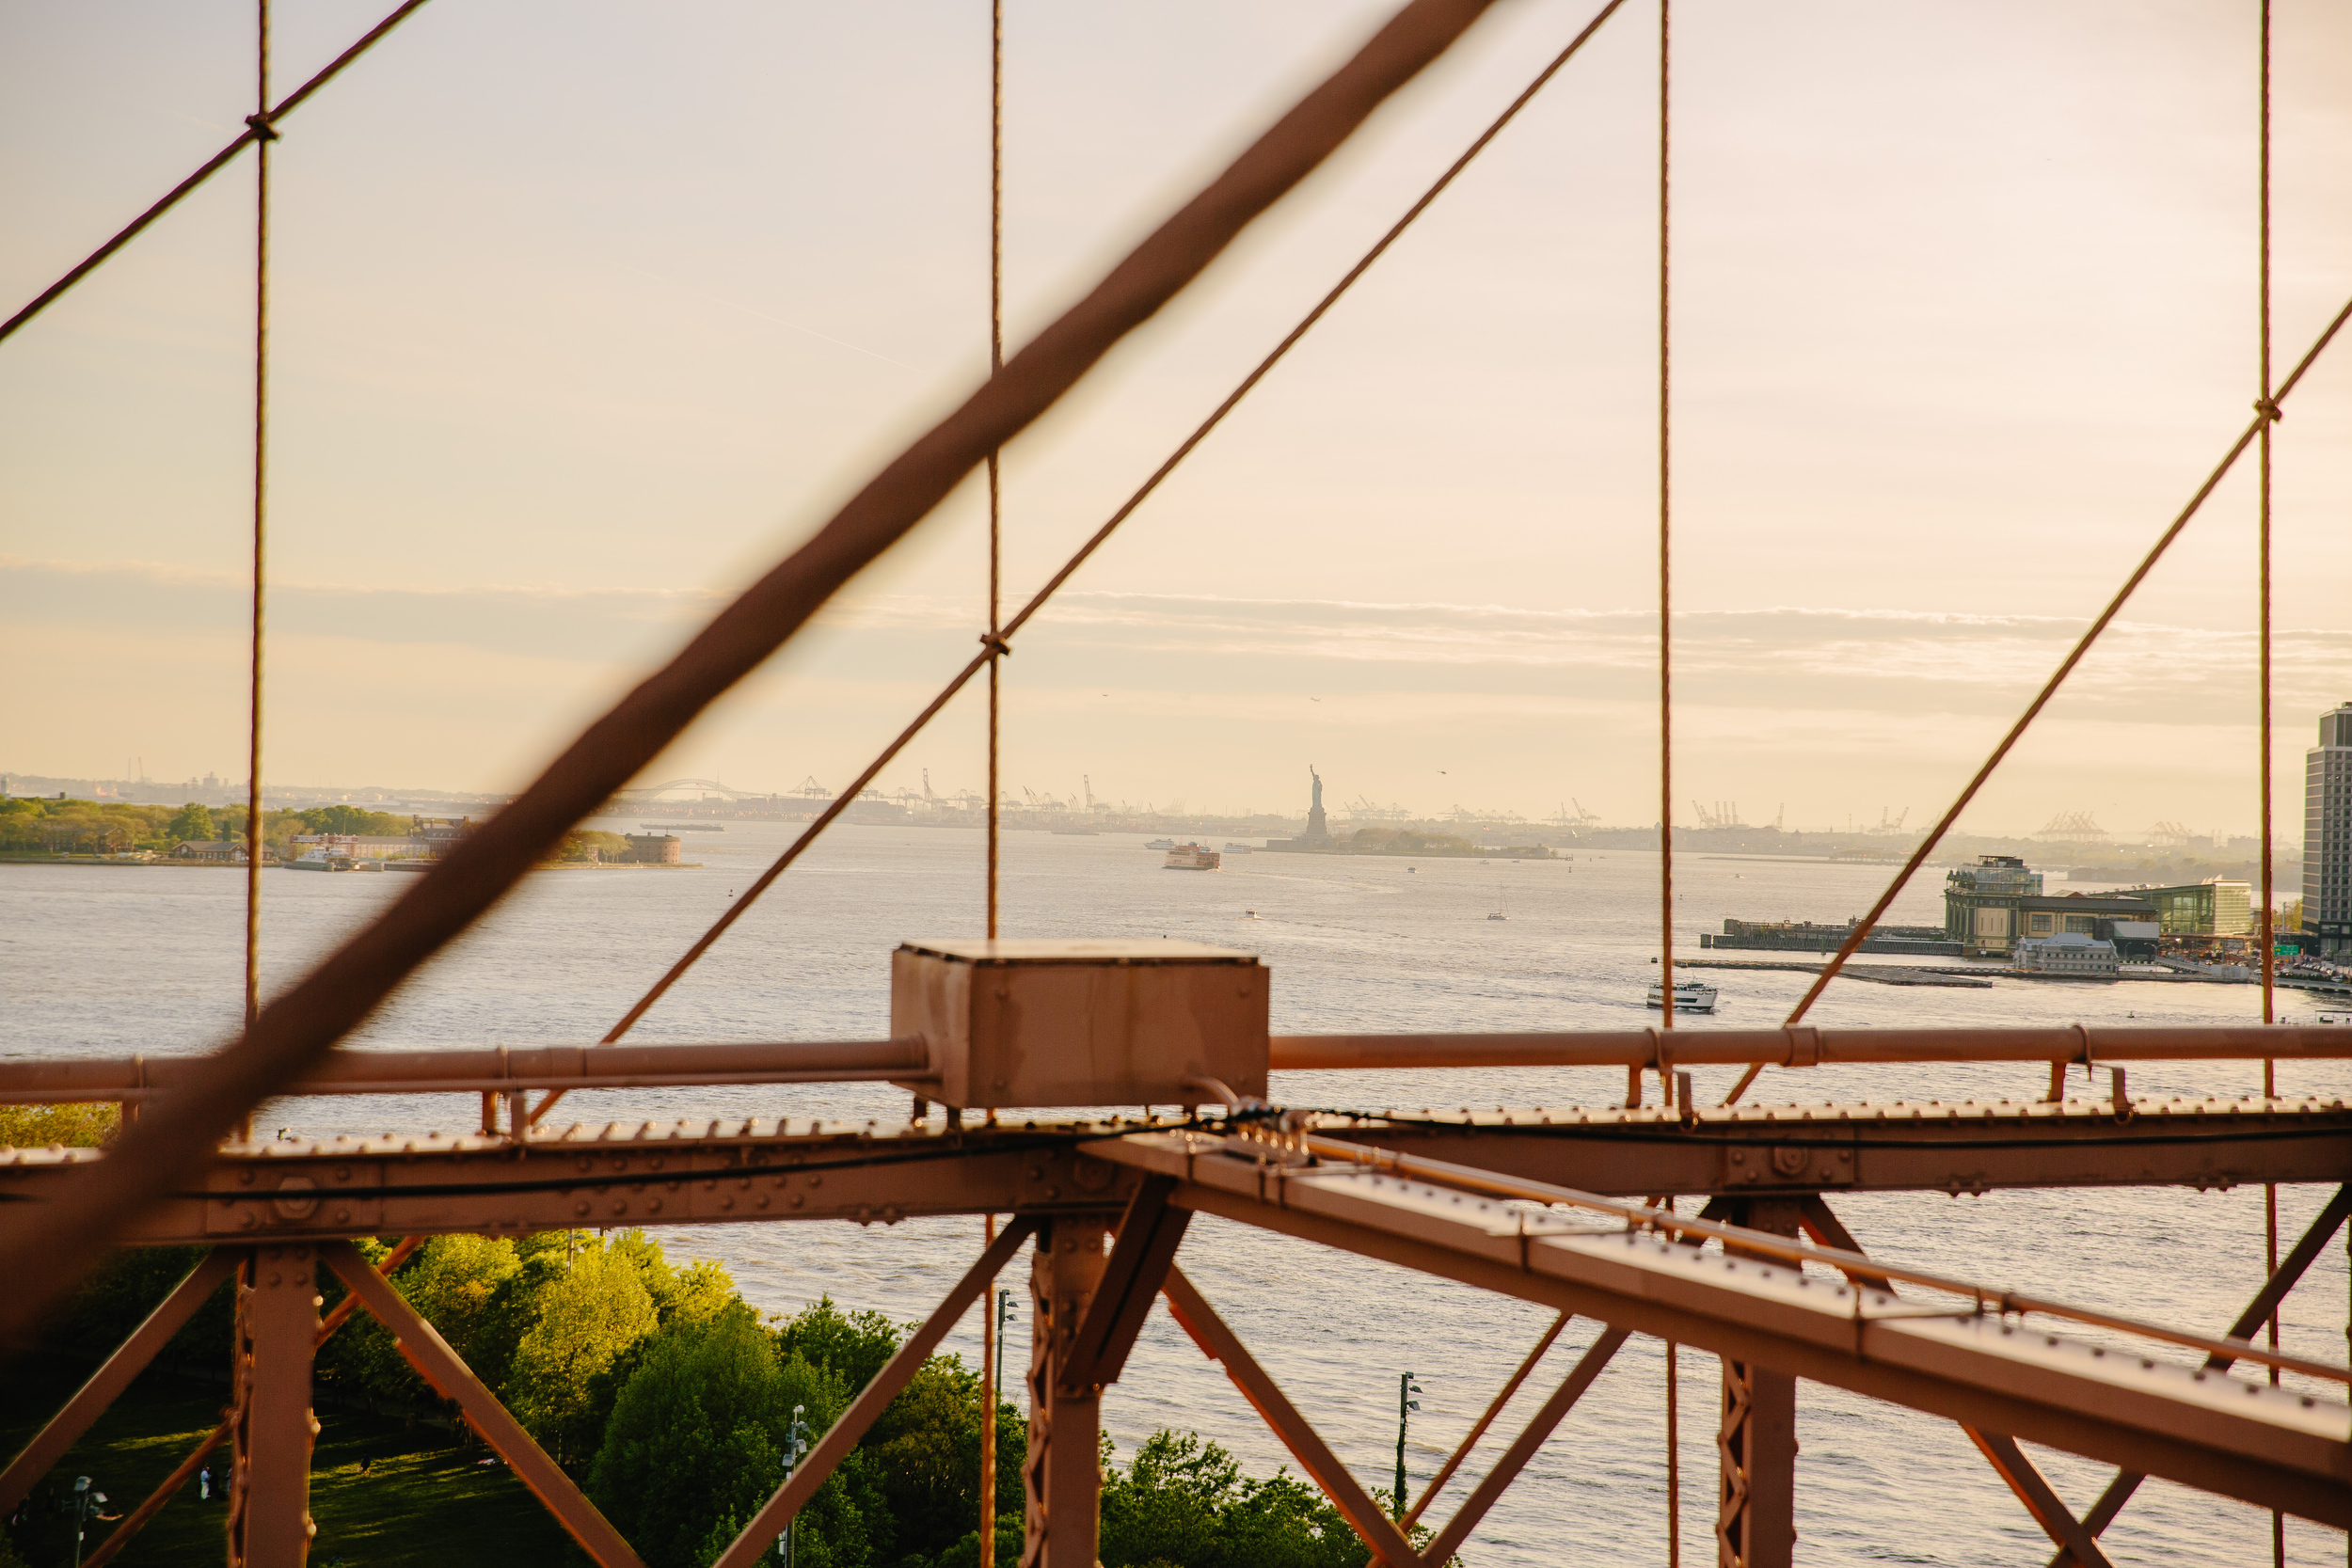 views of the statue of liberty from the brooklyn bridge engagement session locations